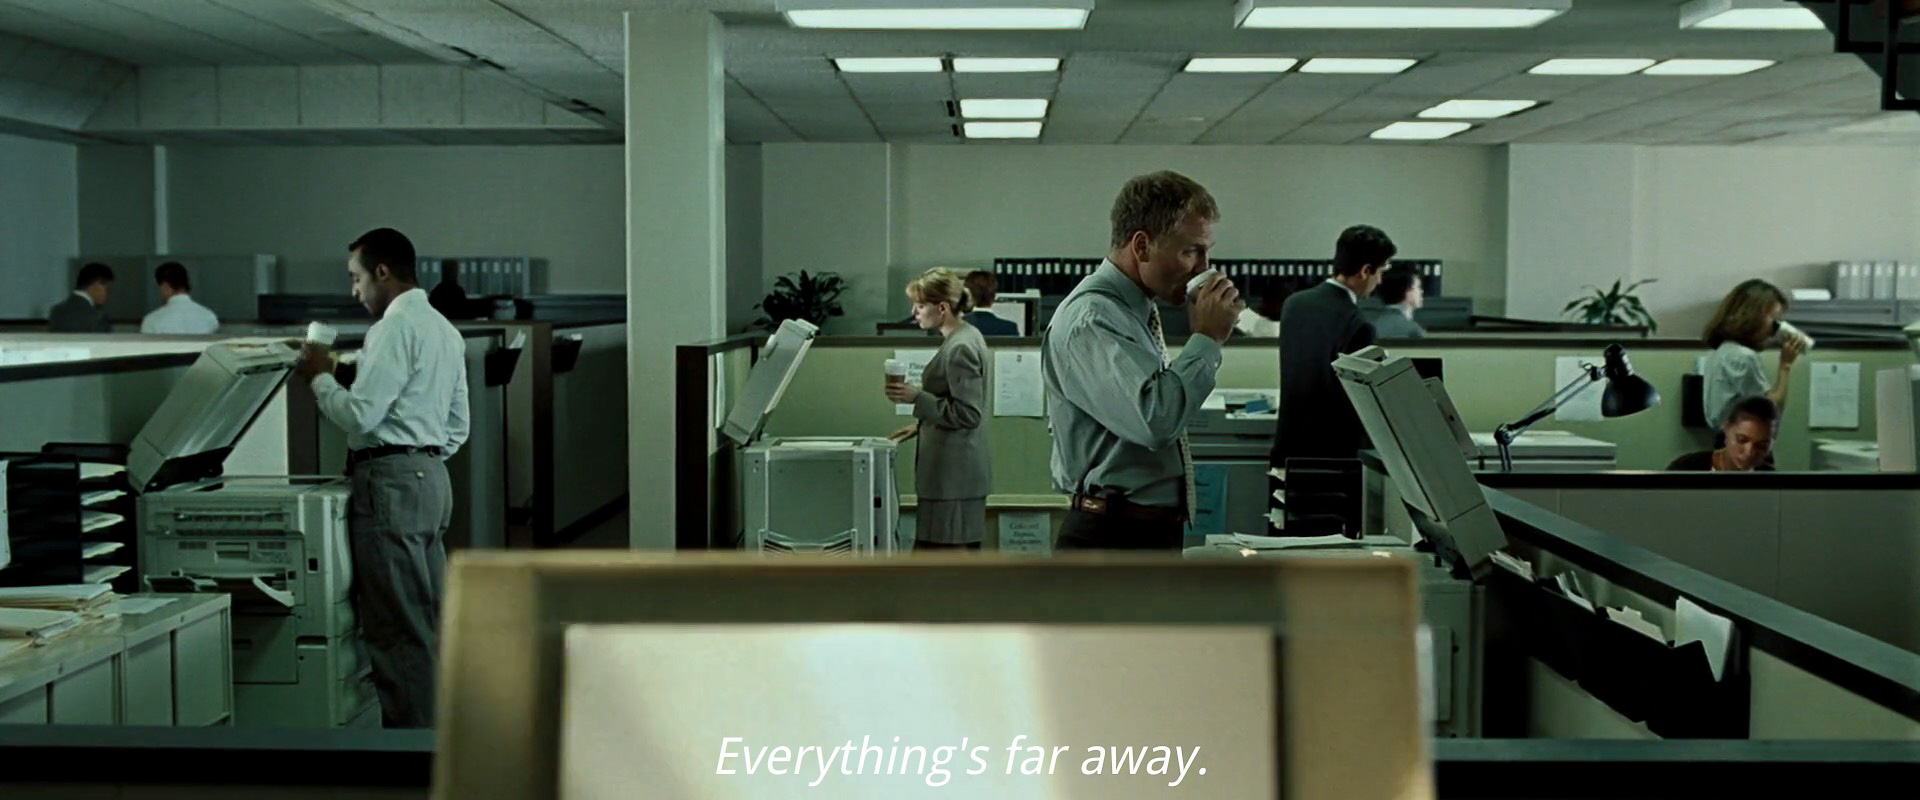 fight club cinematography life lessons-2.jpg